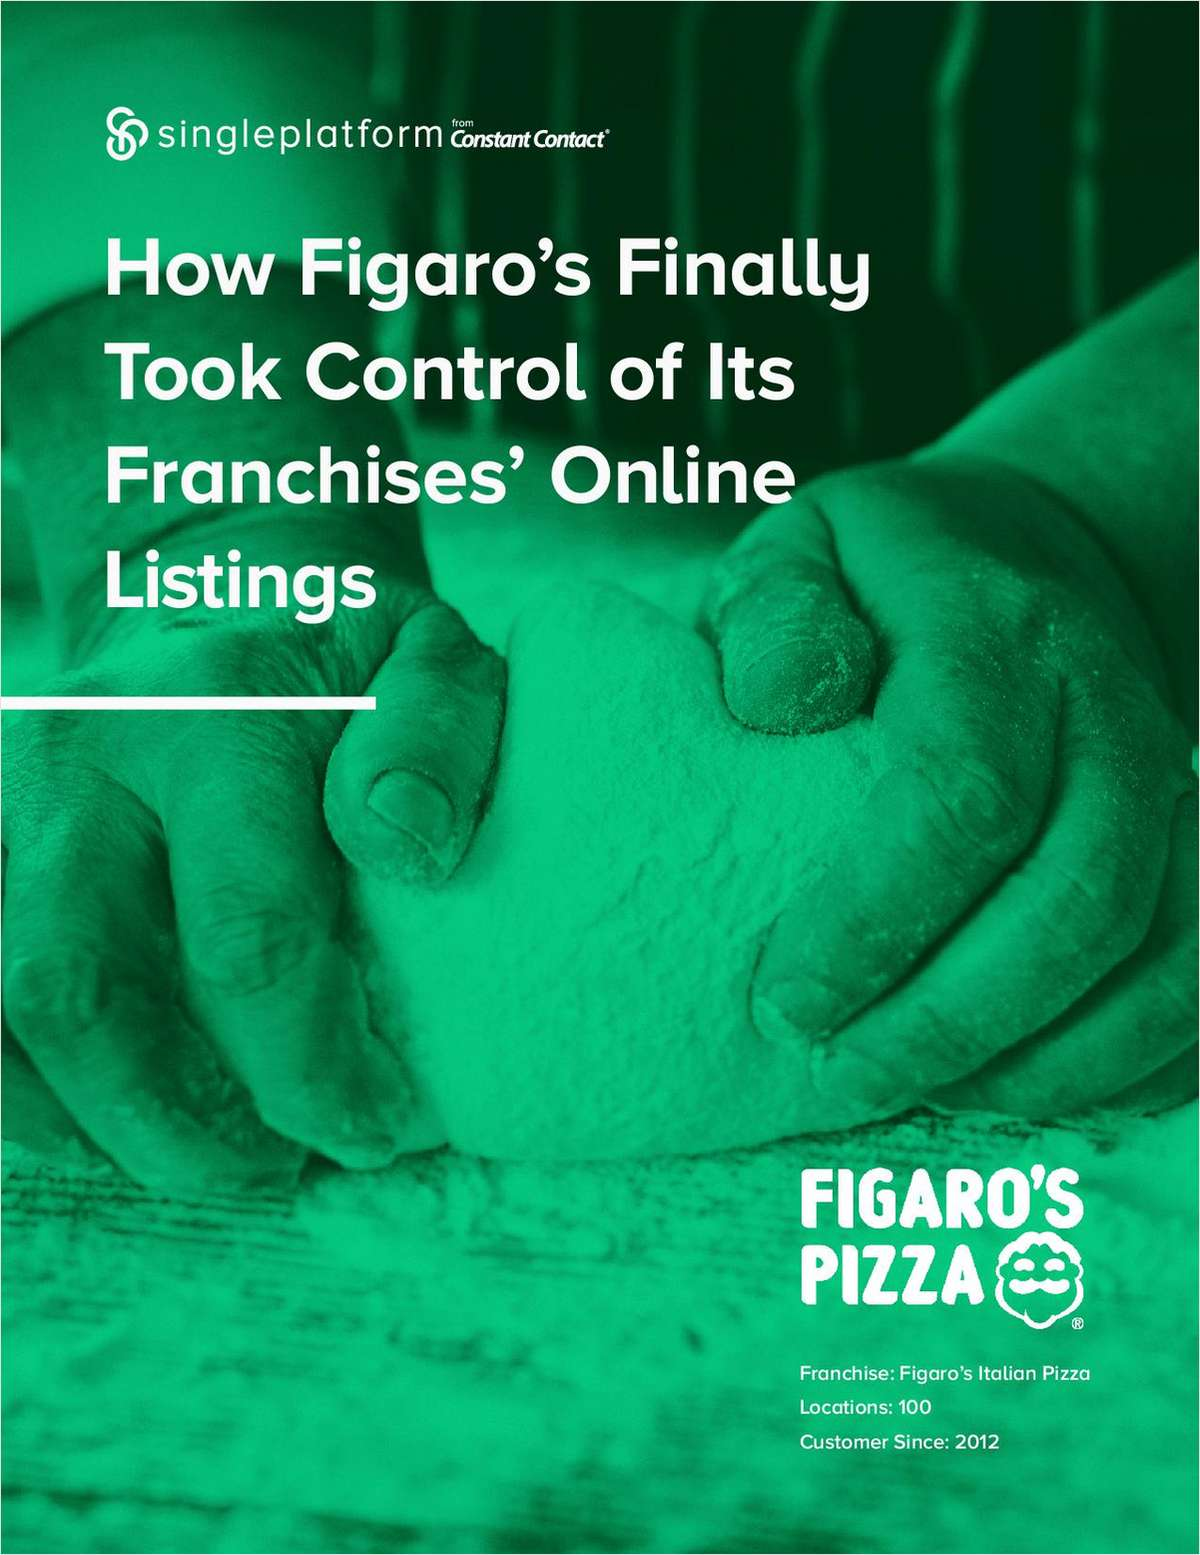 How Figaro's finally took Control of Its Franchises' Online Listings